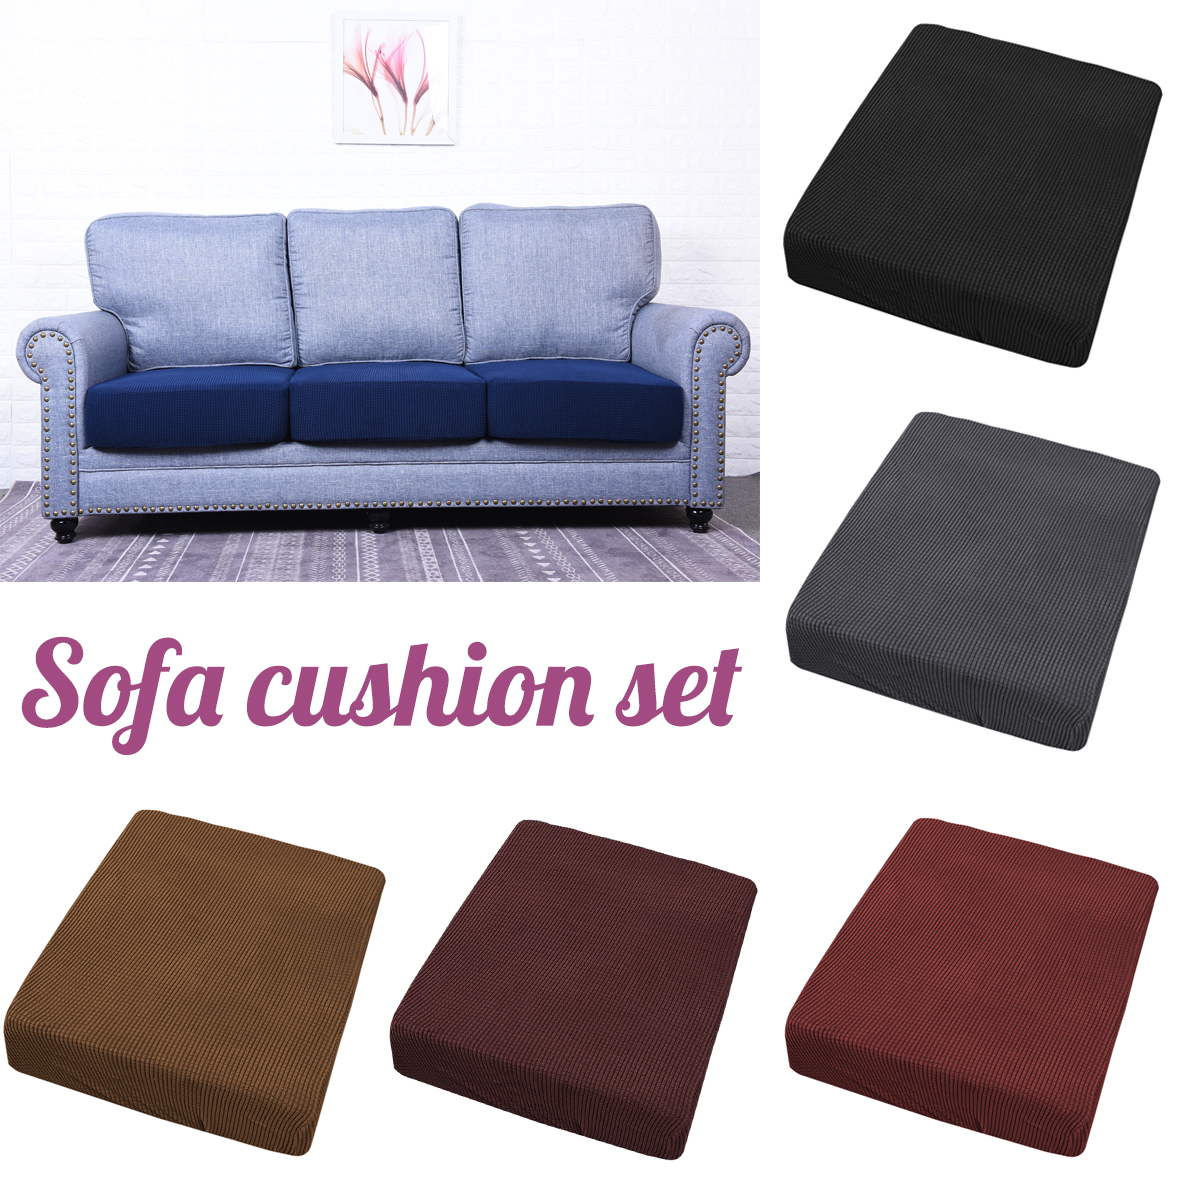 1 4 Seats Replacement Settee Sofa Seat